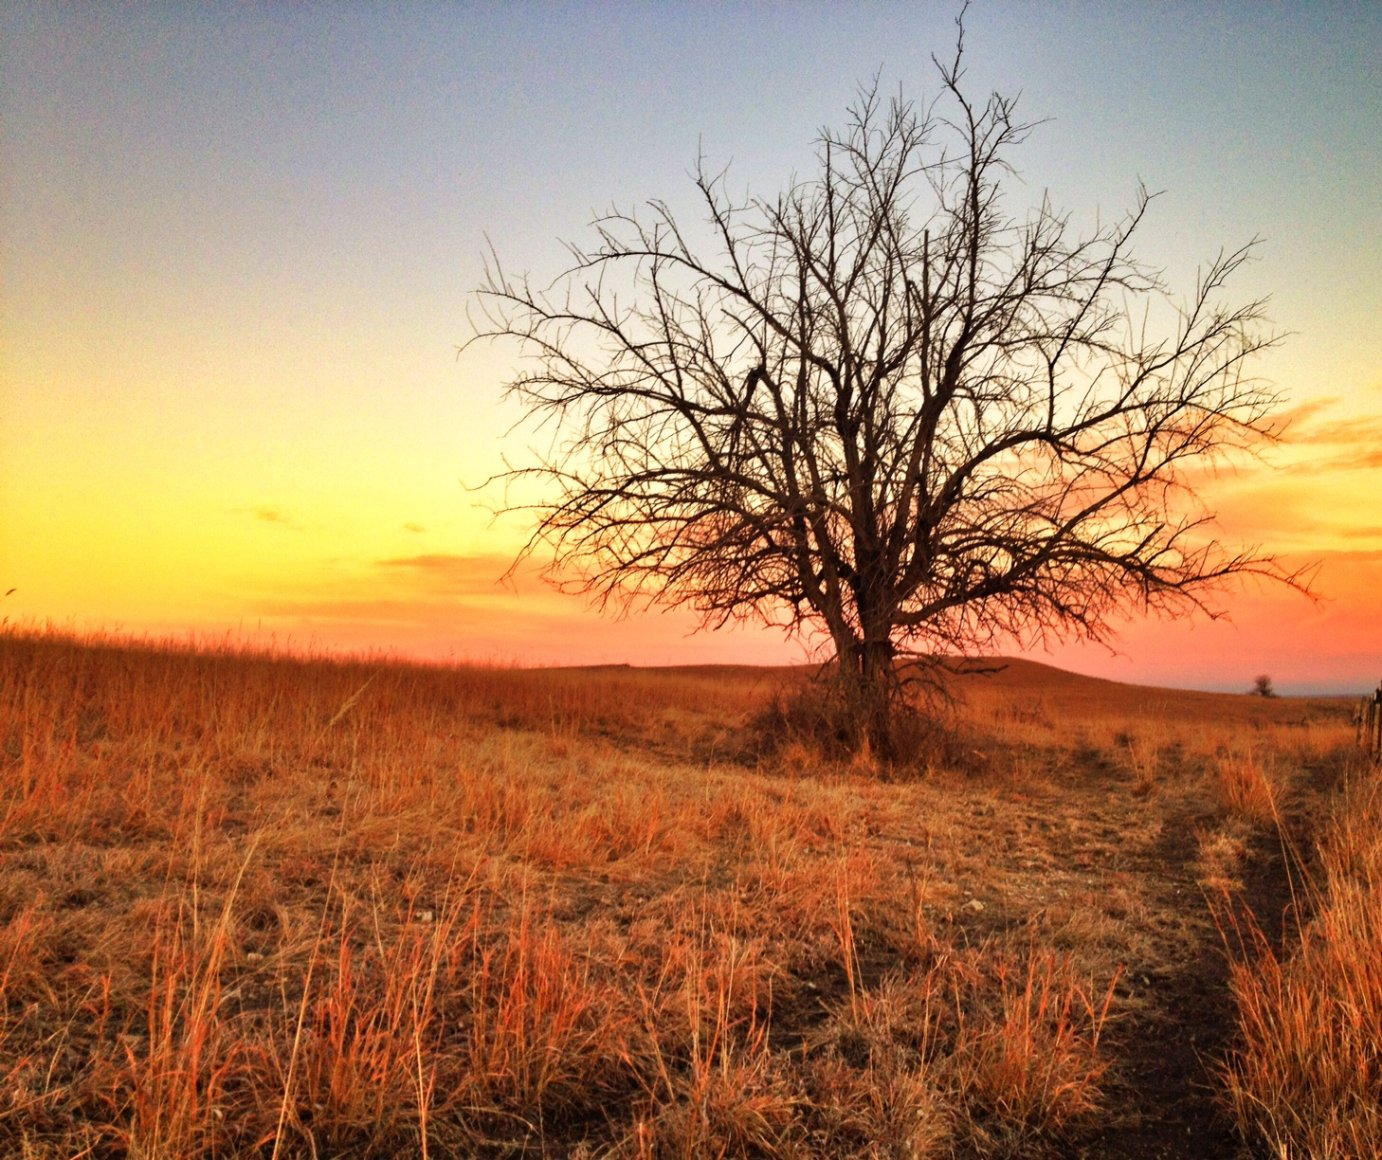 Tree Against Sky in the Flint Hills